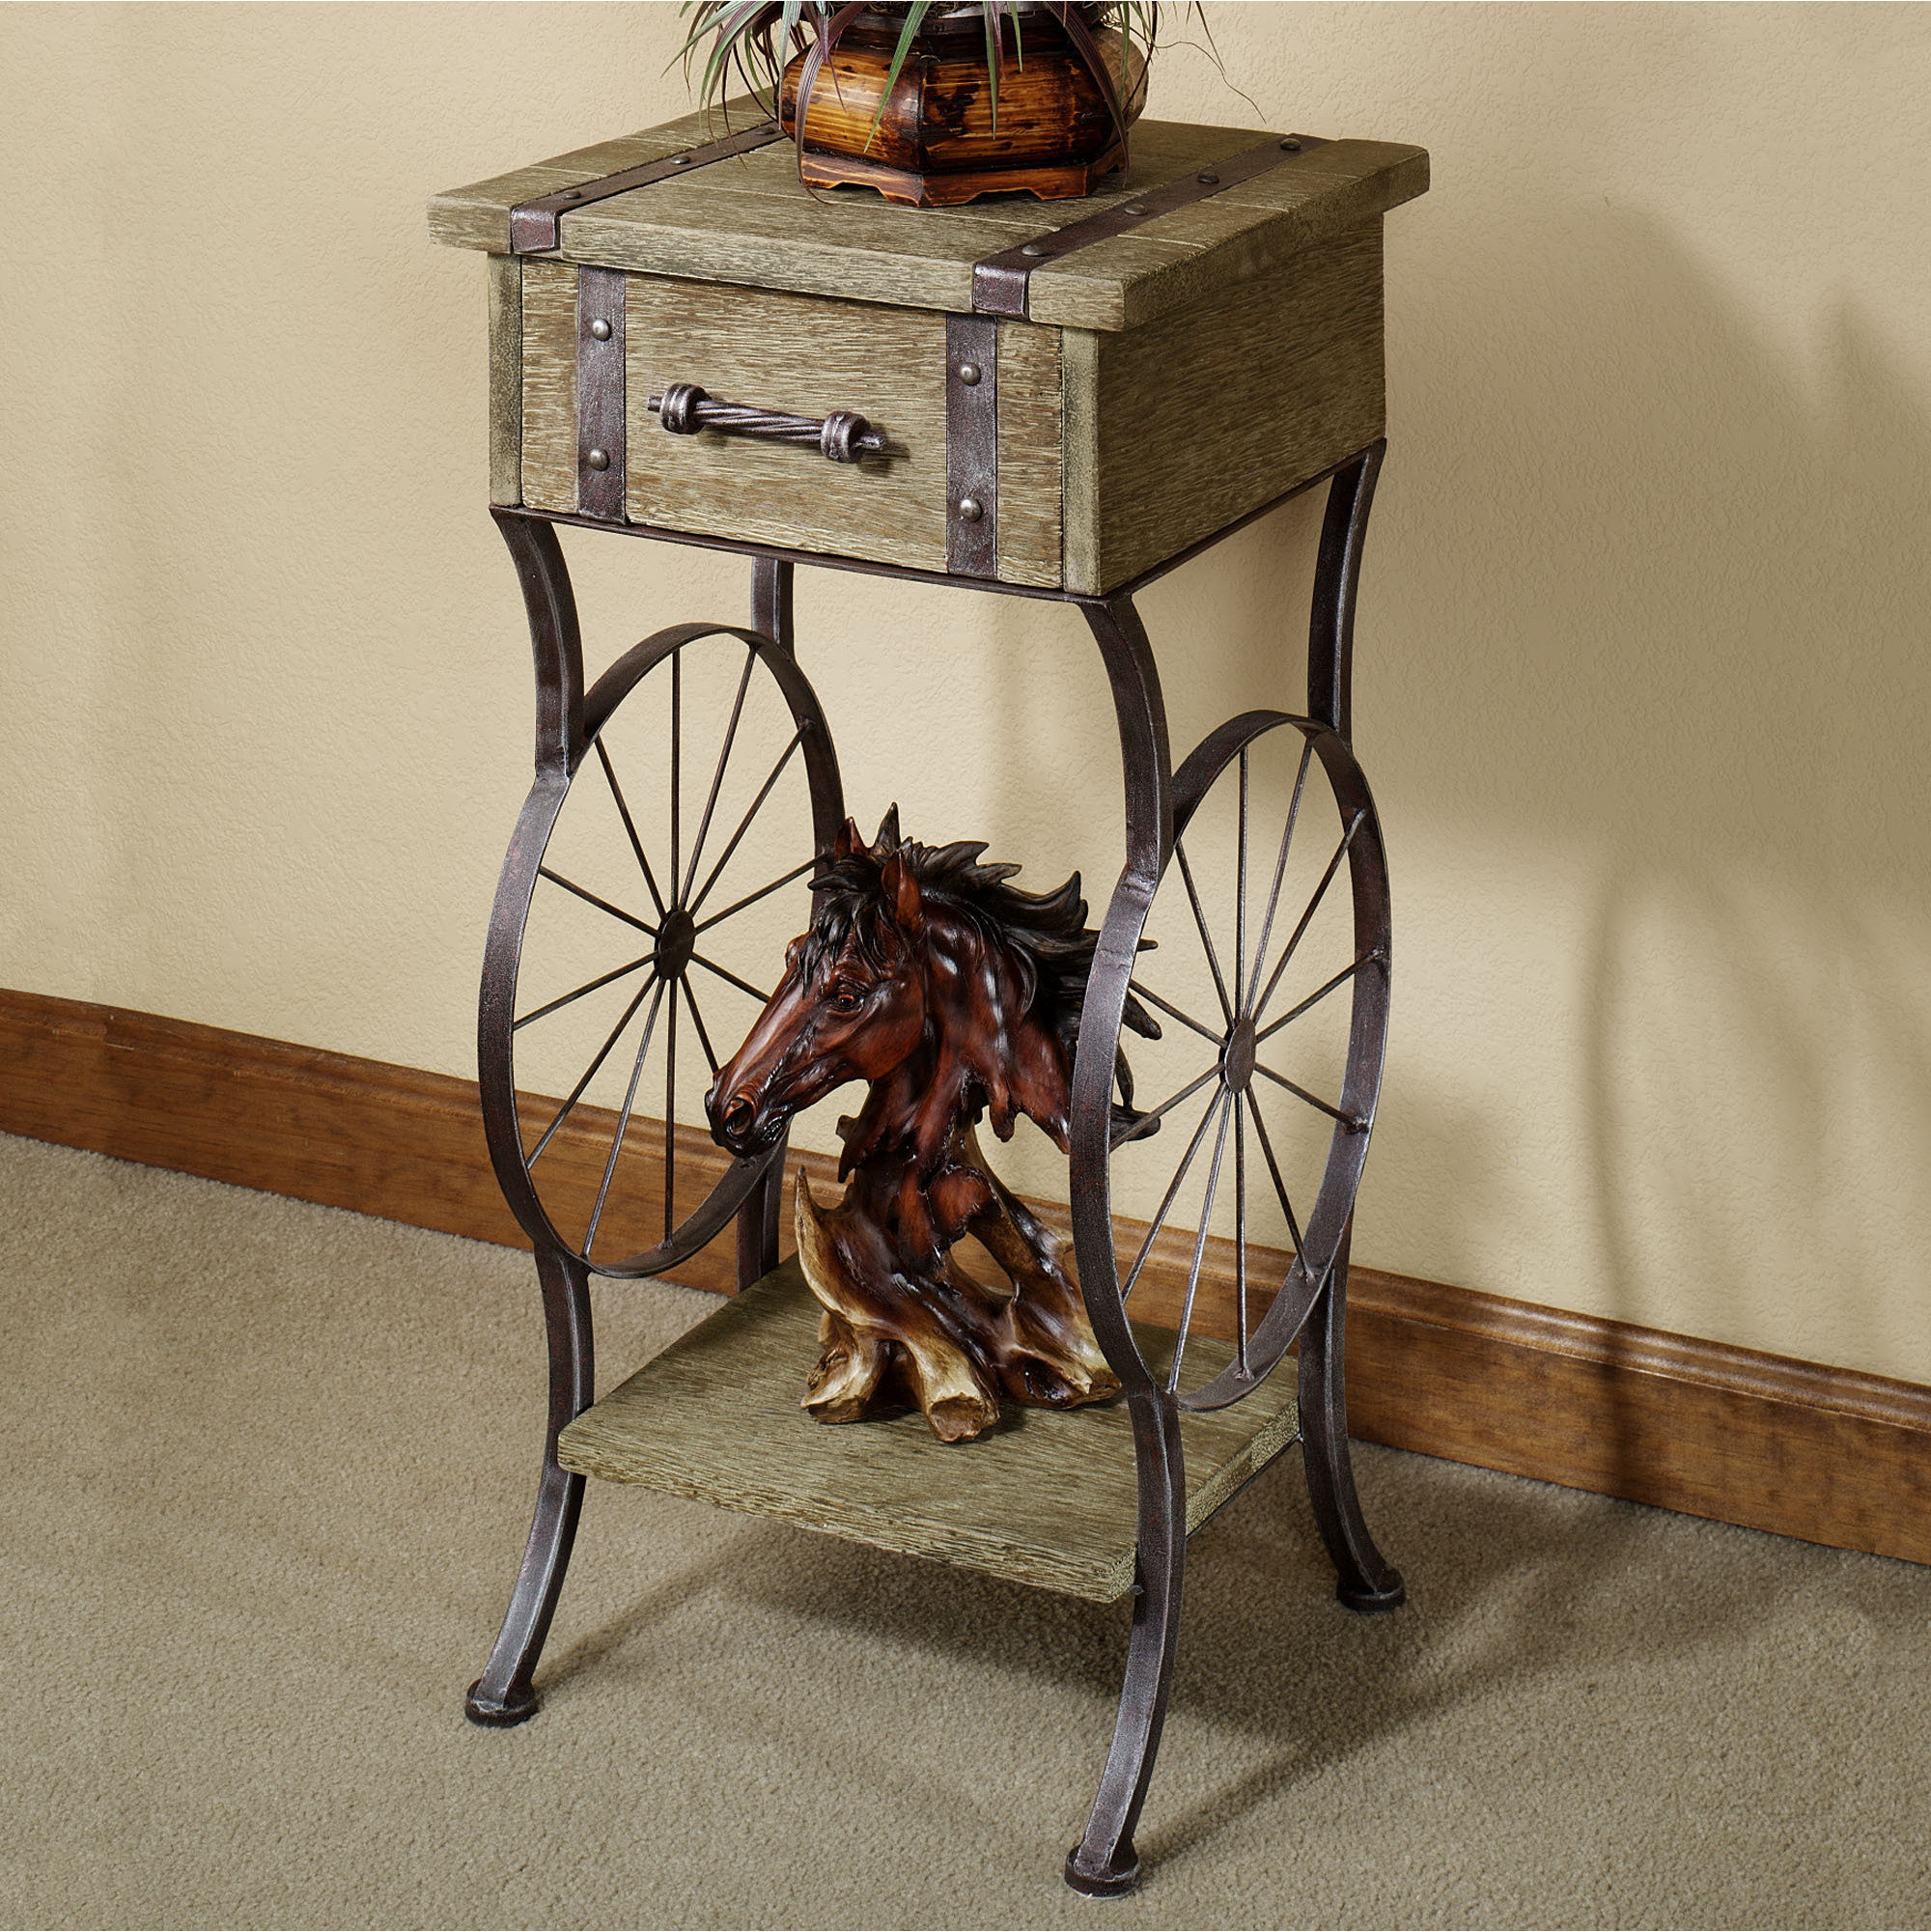 beautiful rustic accent table with kitchen fetching narrow side popular tables coaster design ideas homedesign very metal dining room chairs wine rack underneath west elm bedroom